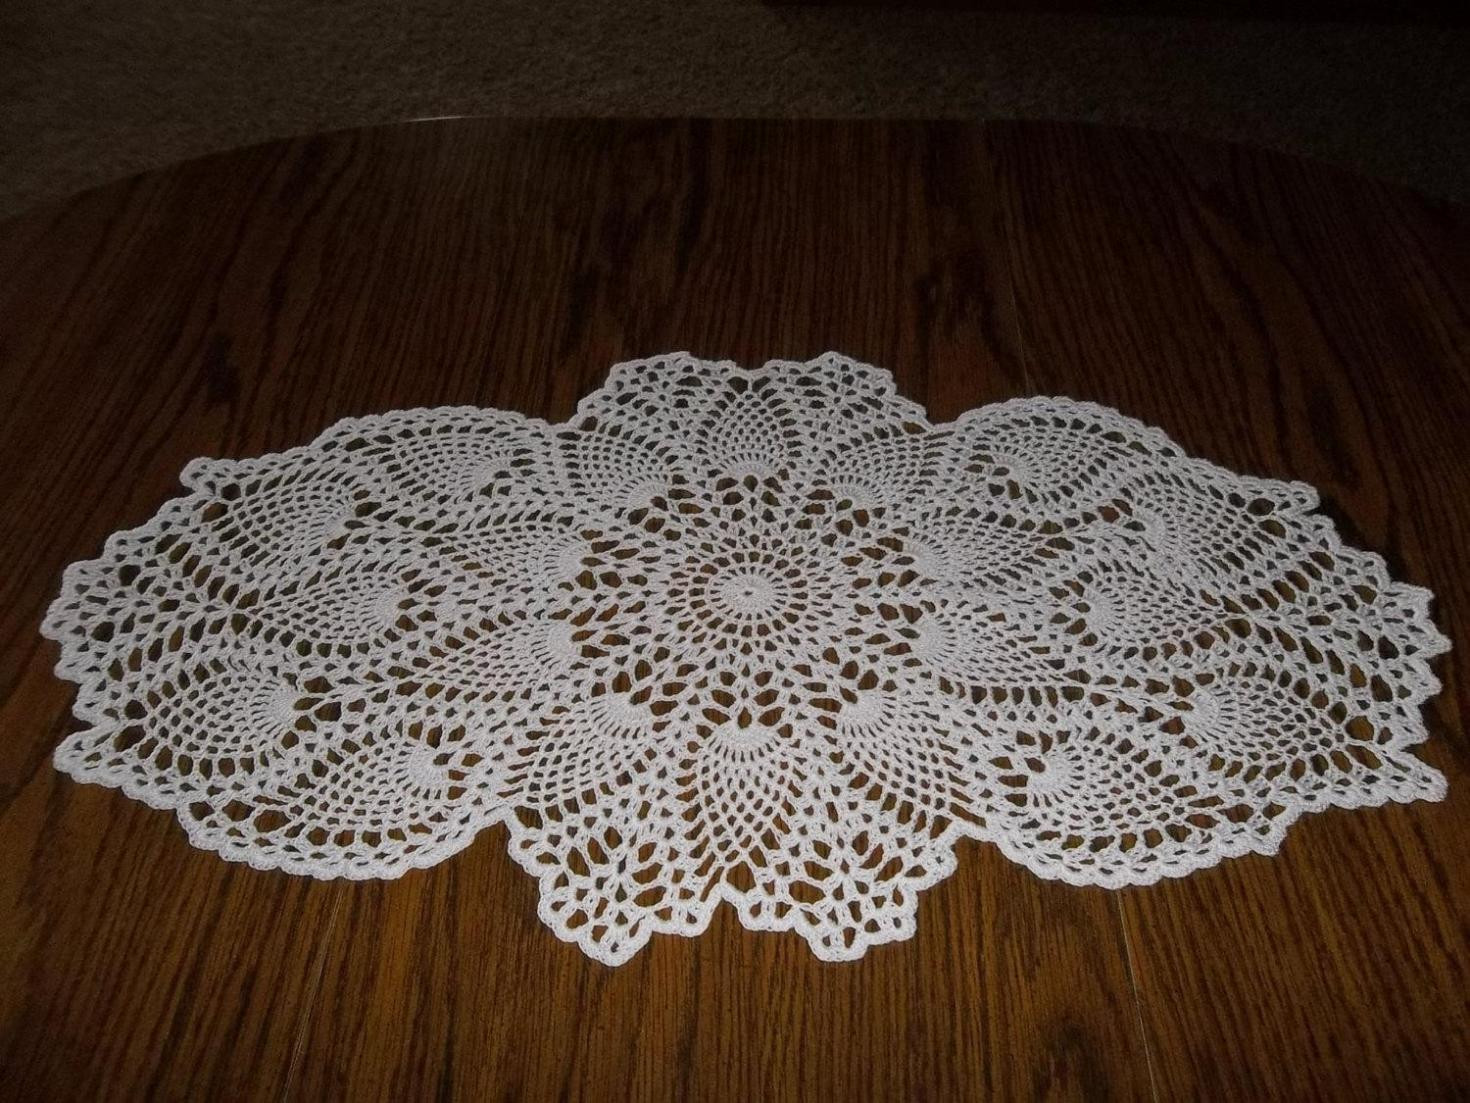 Elegant Just for You 17 Crochet Table Runner Patterns for Free Crochet Of Contemporary 42 Ideas Free Crochet